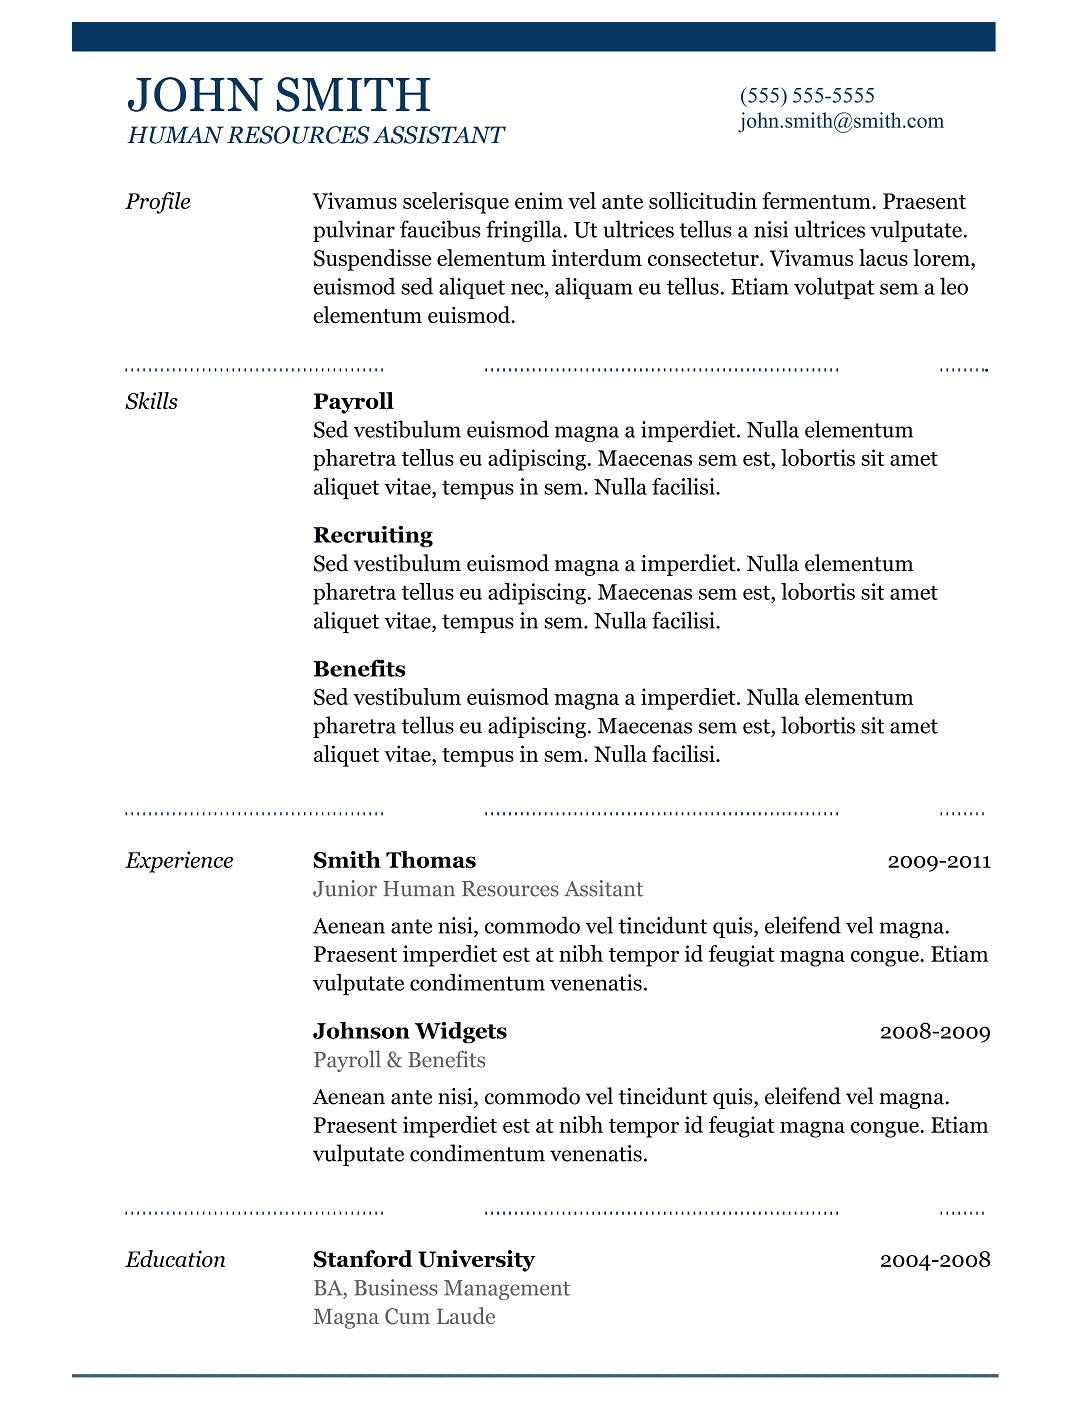 Best Free Resume Templates Download For Freshers  Best